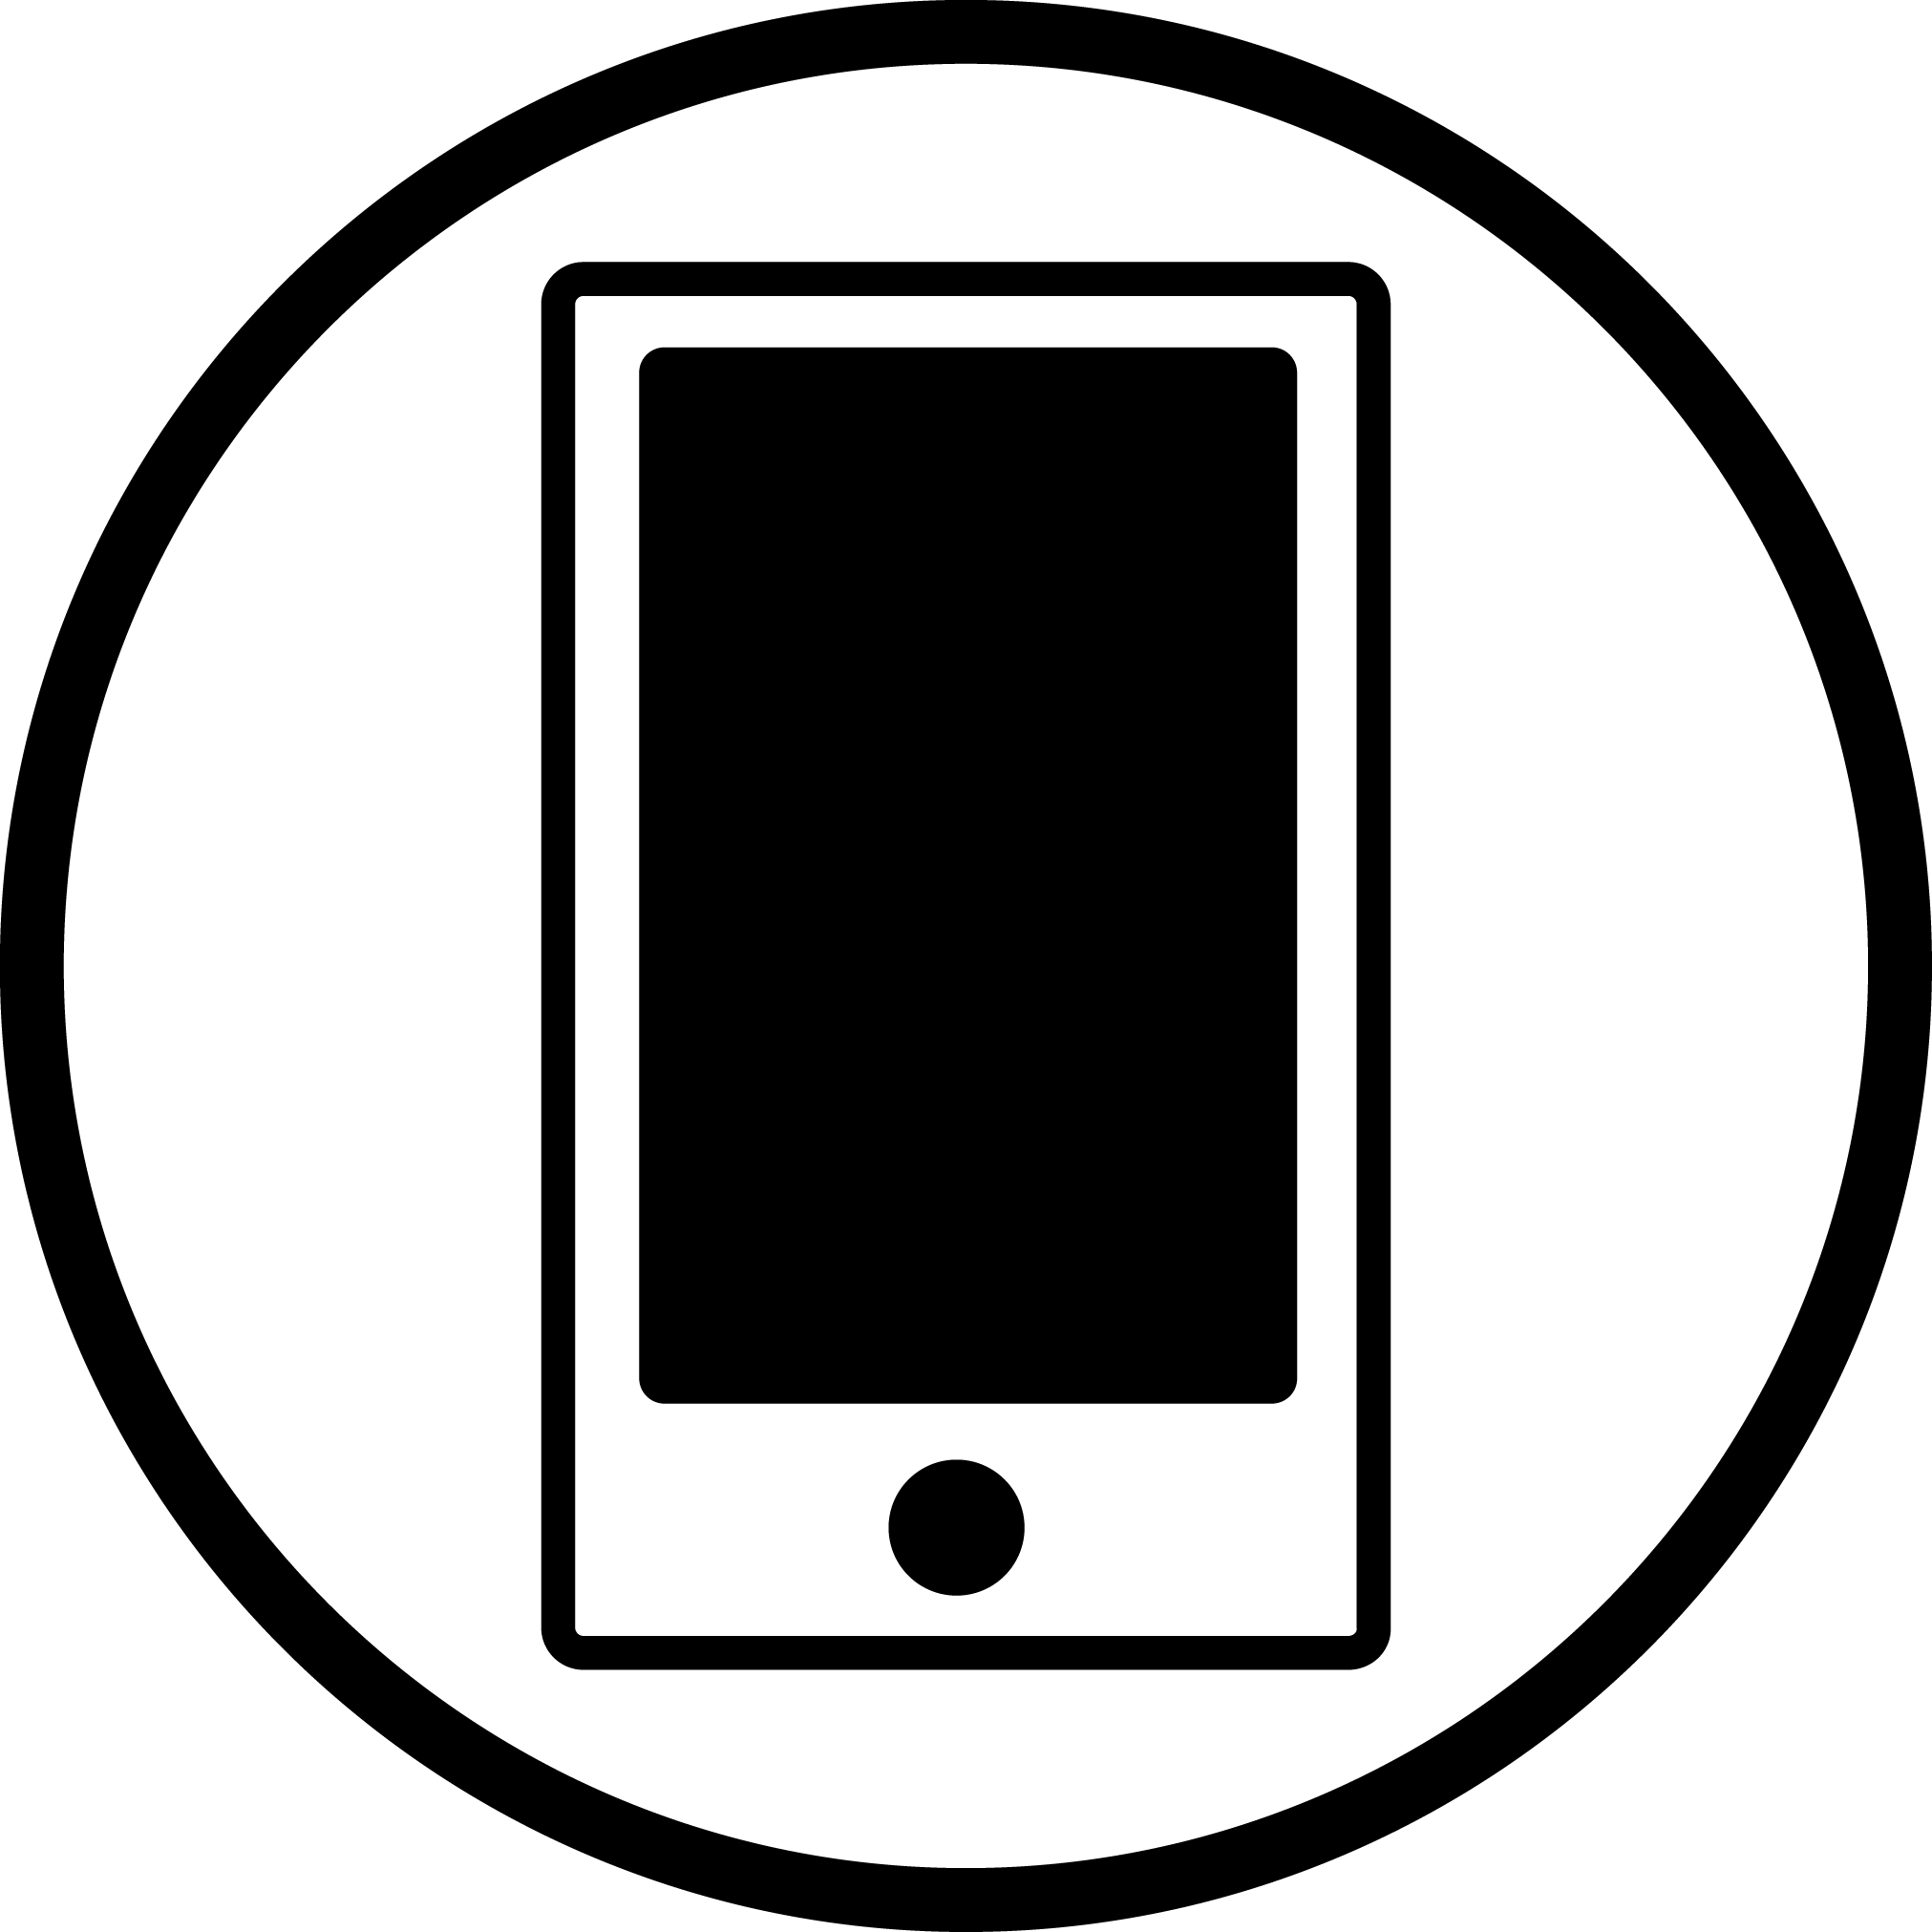 Icon of a phone or tablet device